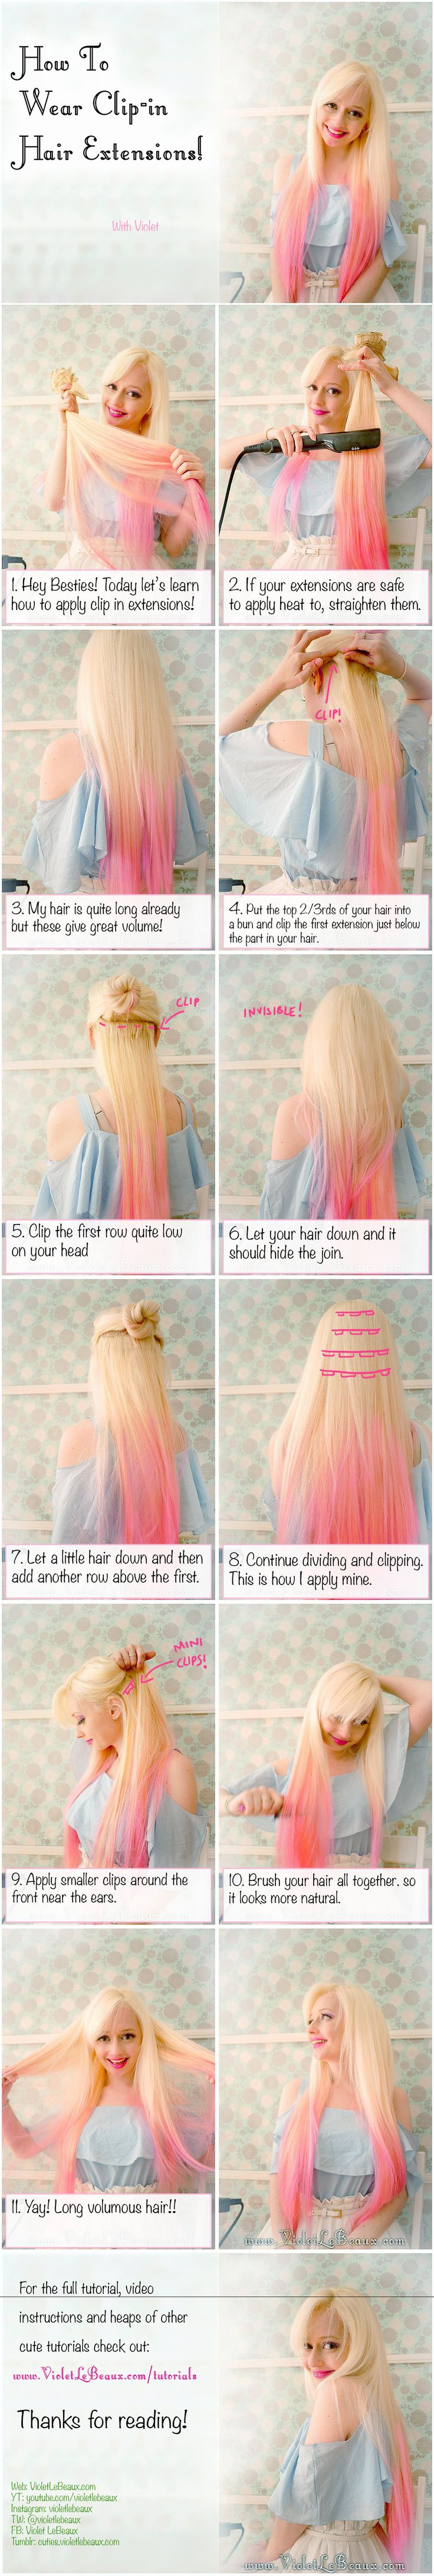 How To Use Clip In Hair Extensions - Hair Tutorial by VioletLeBeaux.deviantart.com on @DeviantArt